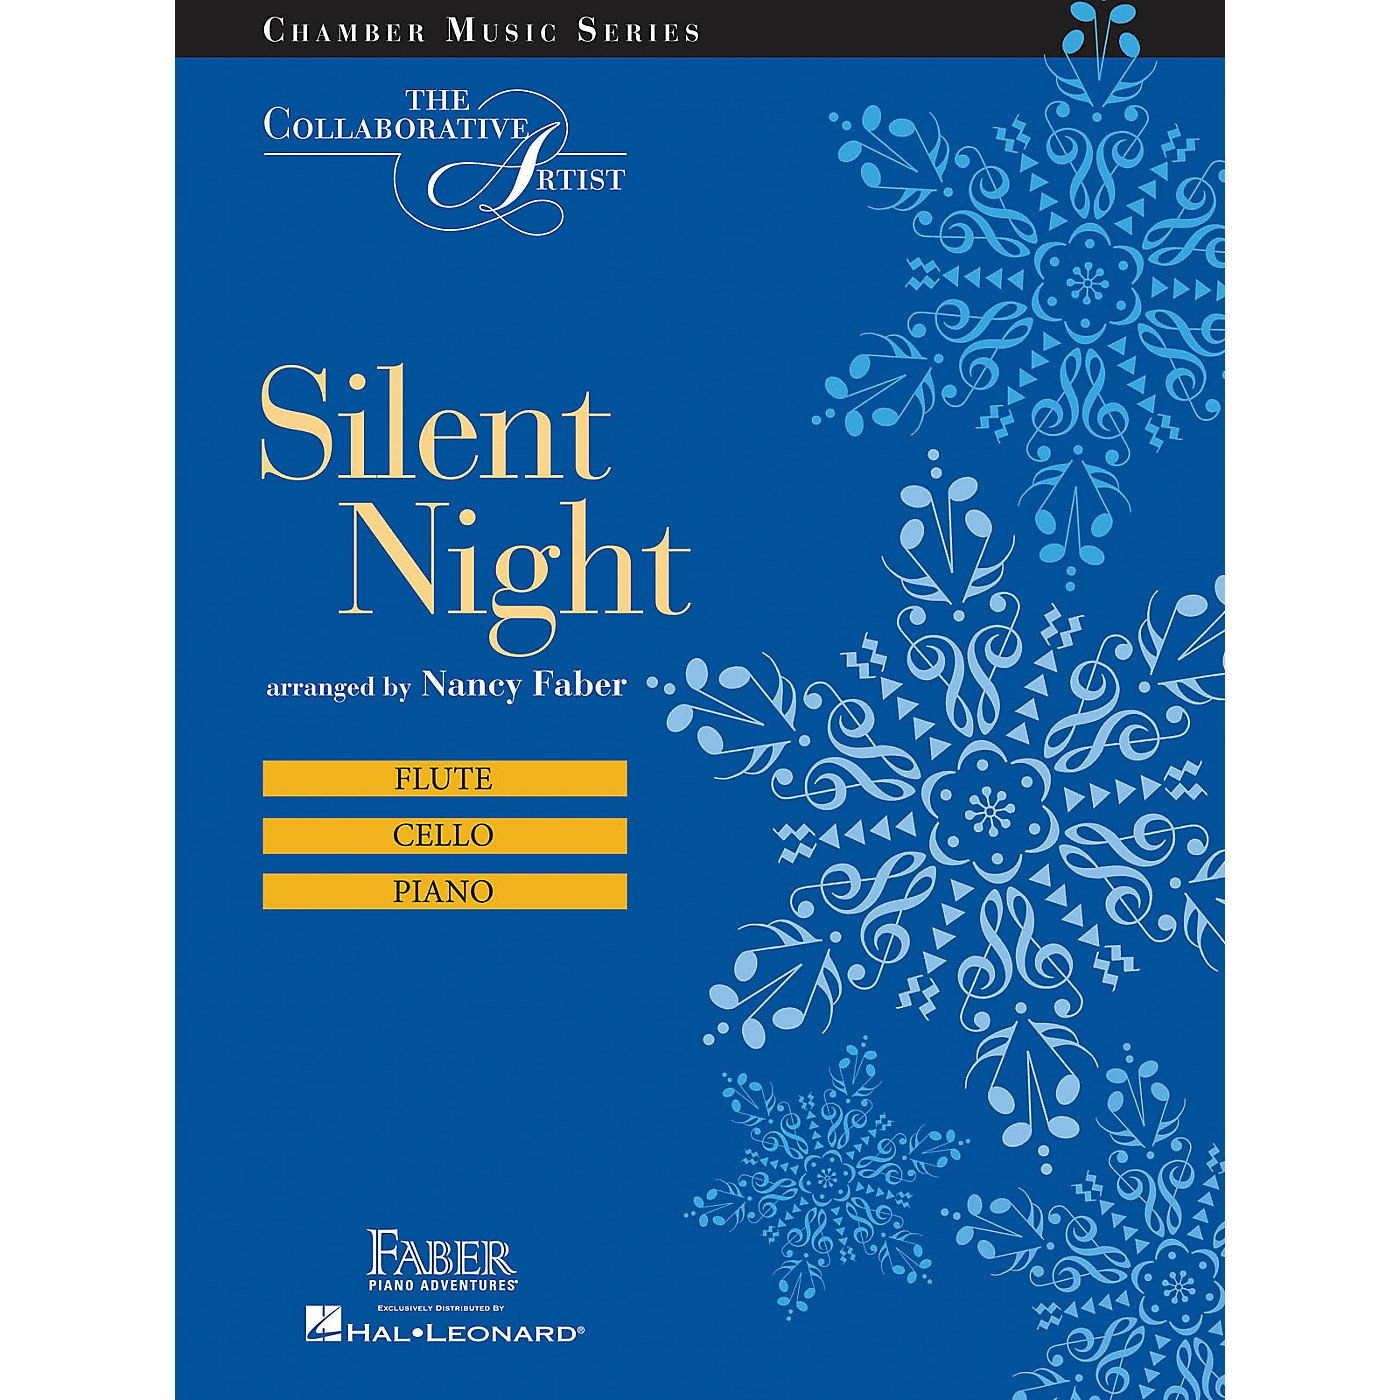 Faber Piano Adventures Silent Night (The Collaborative Artist Chamber Music Series) Faber Piano Adventures® Series thumbnail